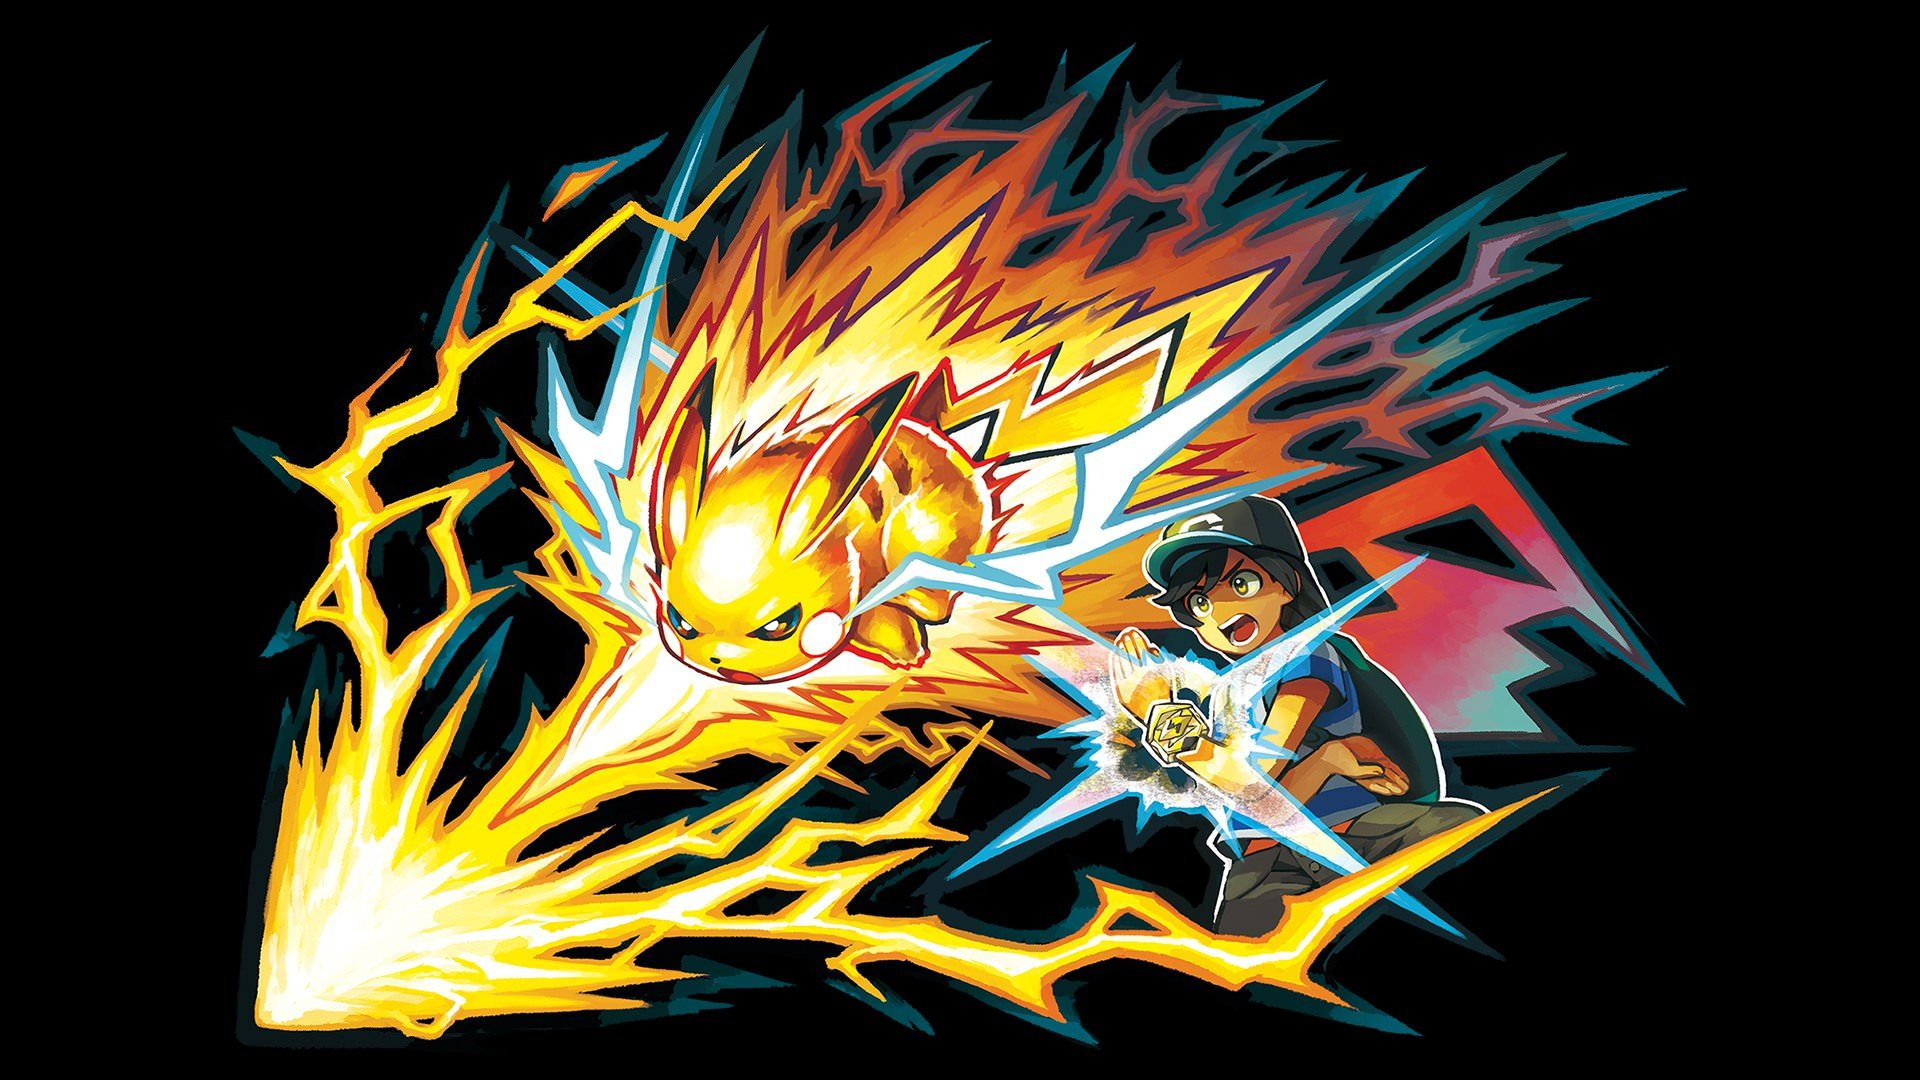 Epic Pikachu Wallpapers Top Free Epic Pikachu Backgrounds